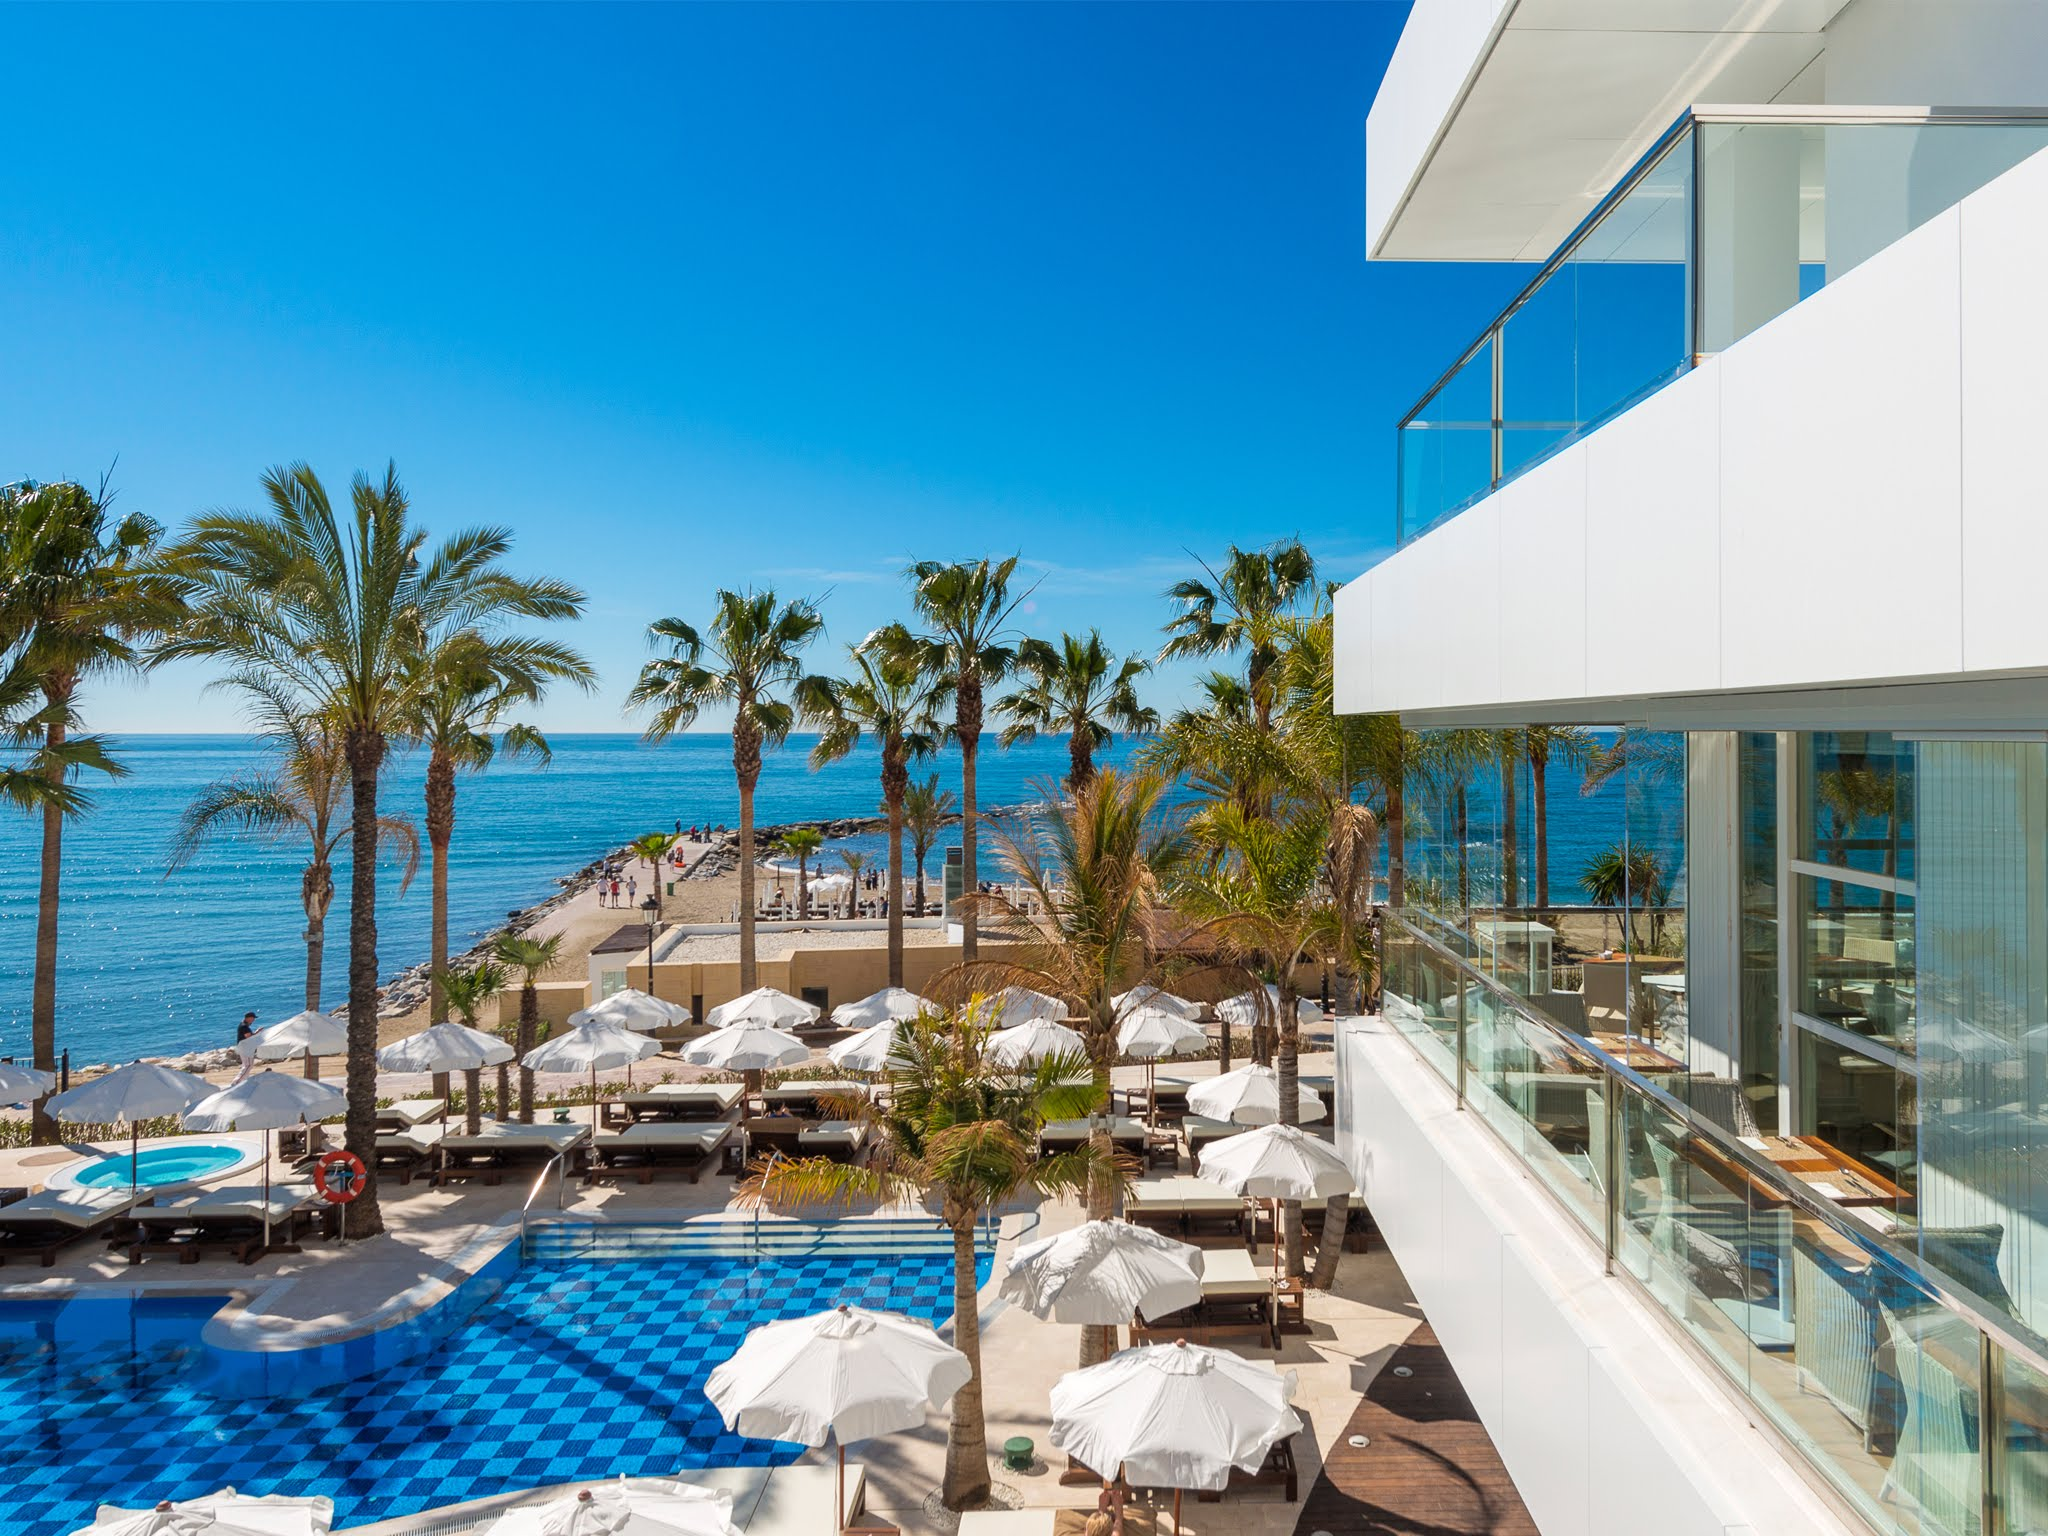 Pool view from the Amare Beach Hotel Marbella